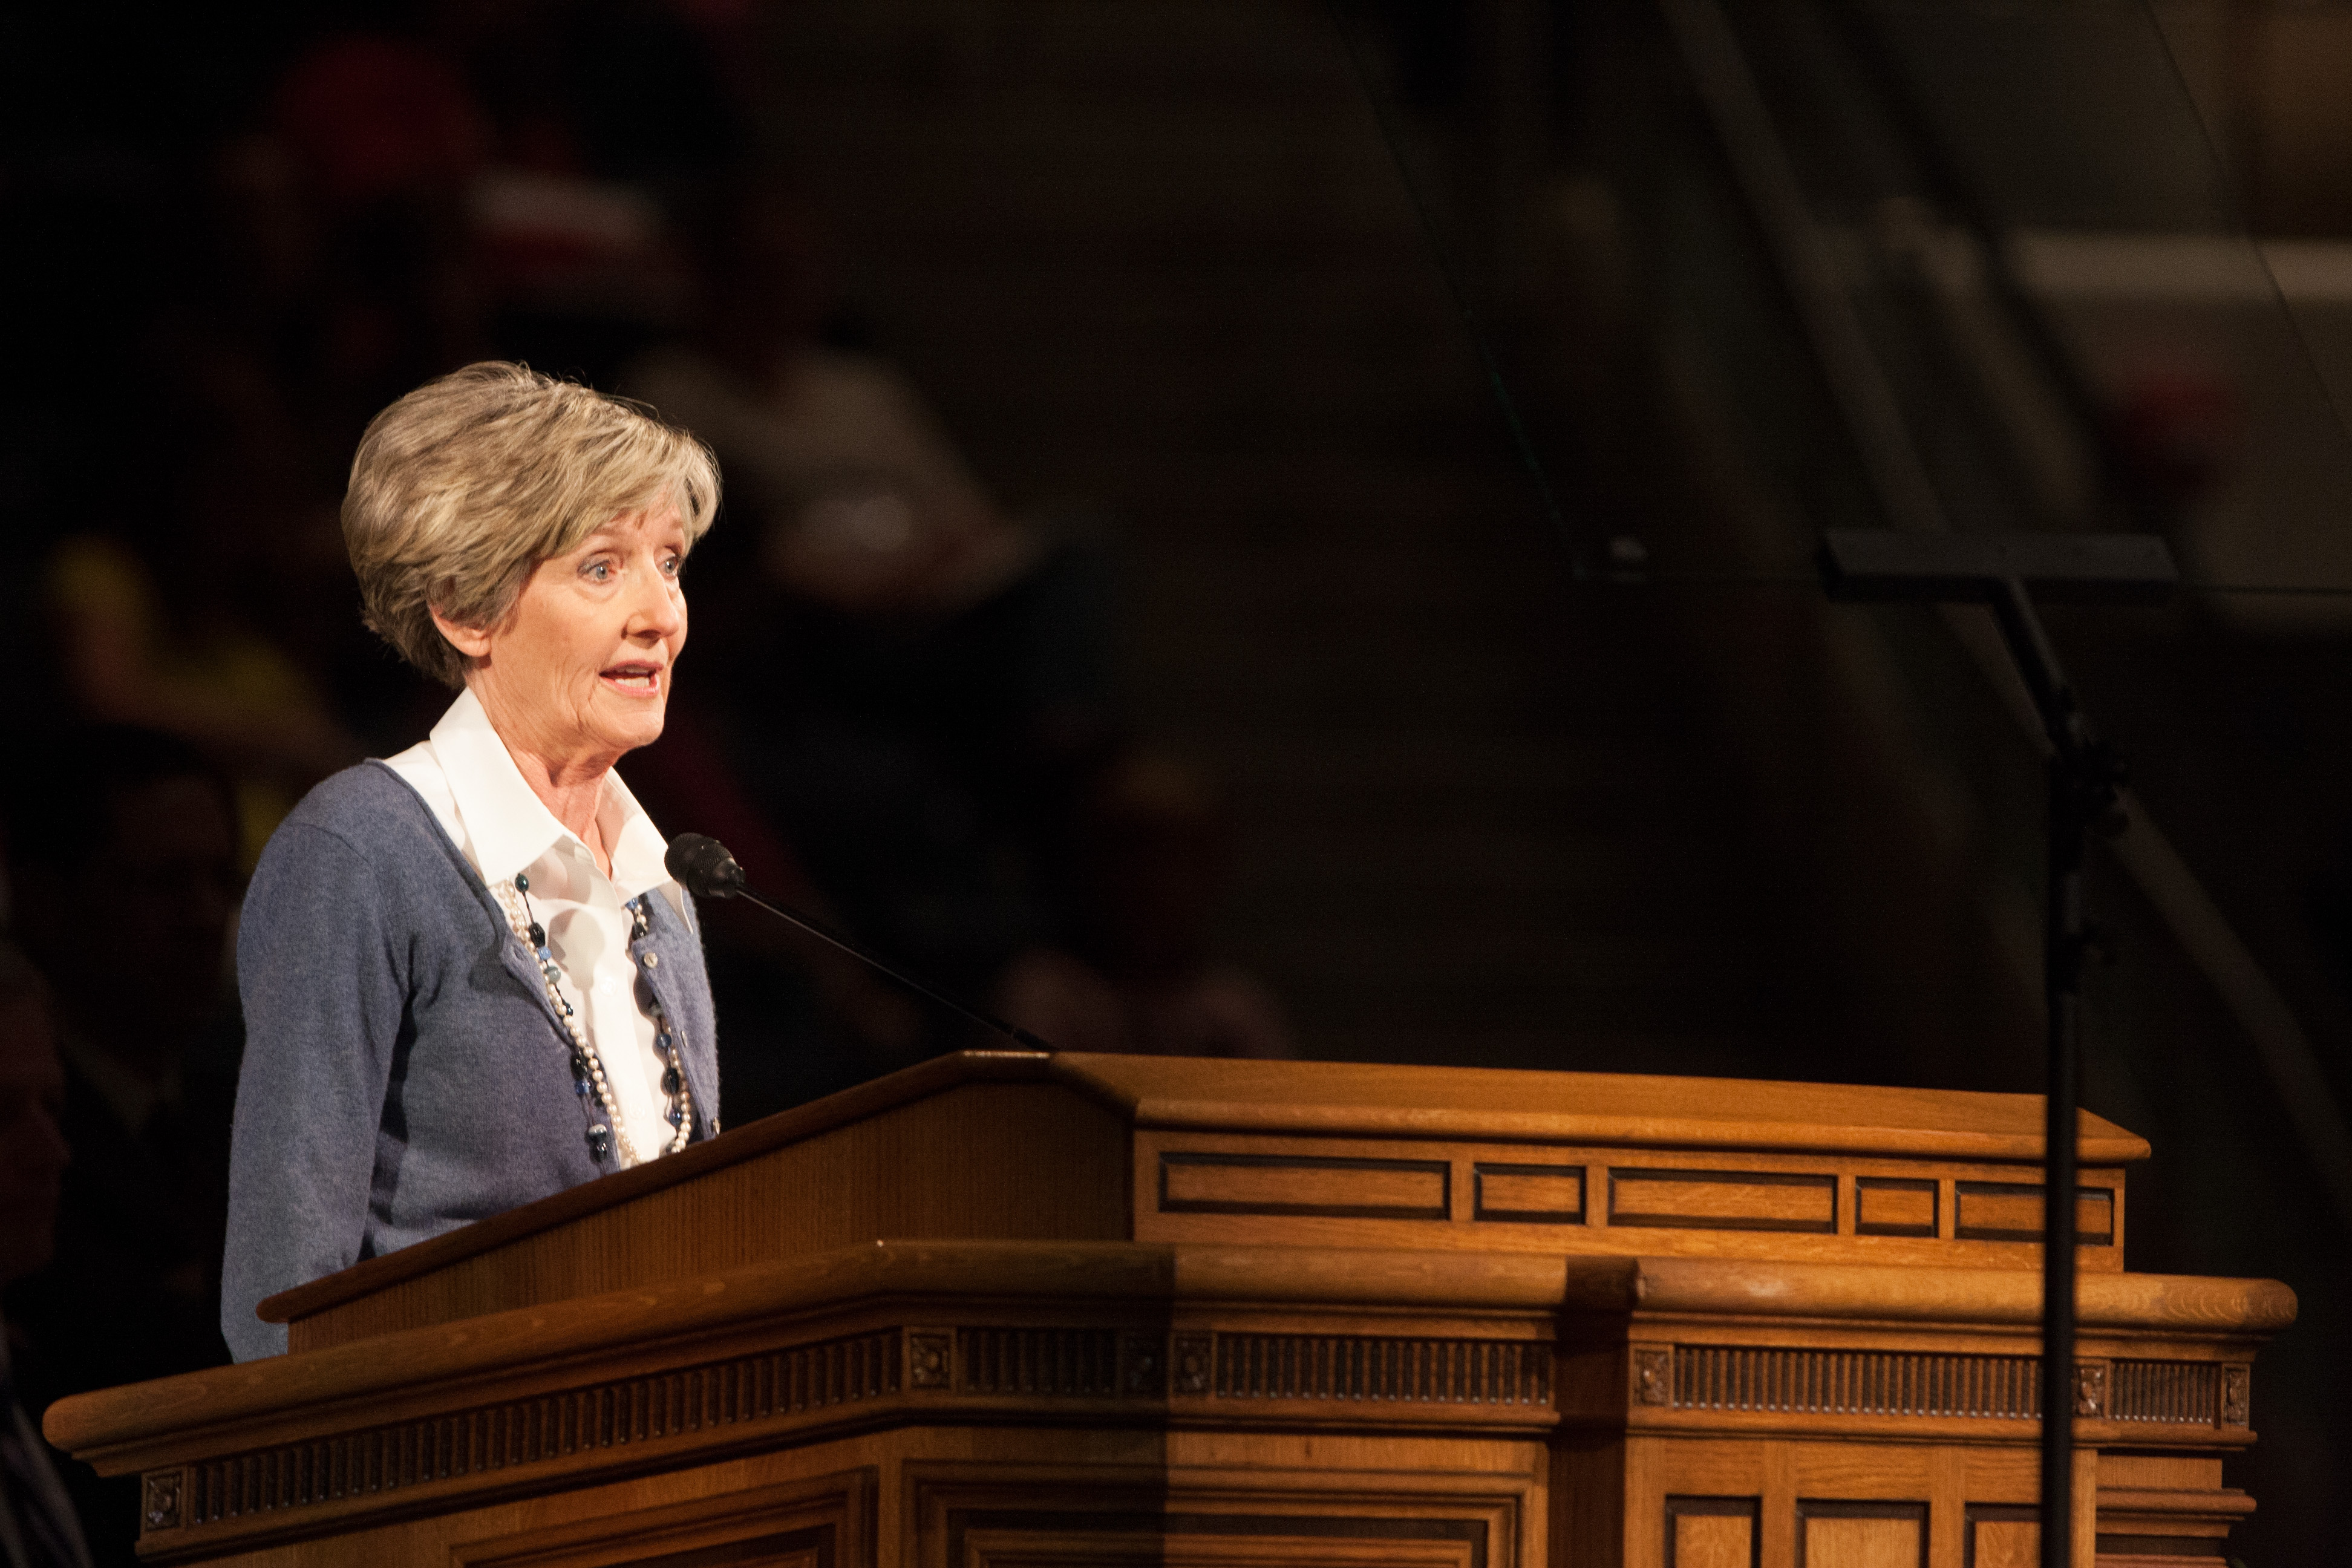 Marie K. Hafen shares the wonderful blessings that come through the atonement of Jesus Christ at the Thursday afternoon, May 1, General Session of the Women's Conference at Brigham Young University. (Photo by Natalie Stoker.)